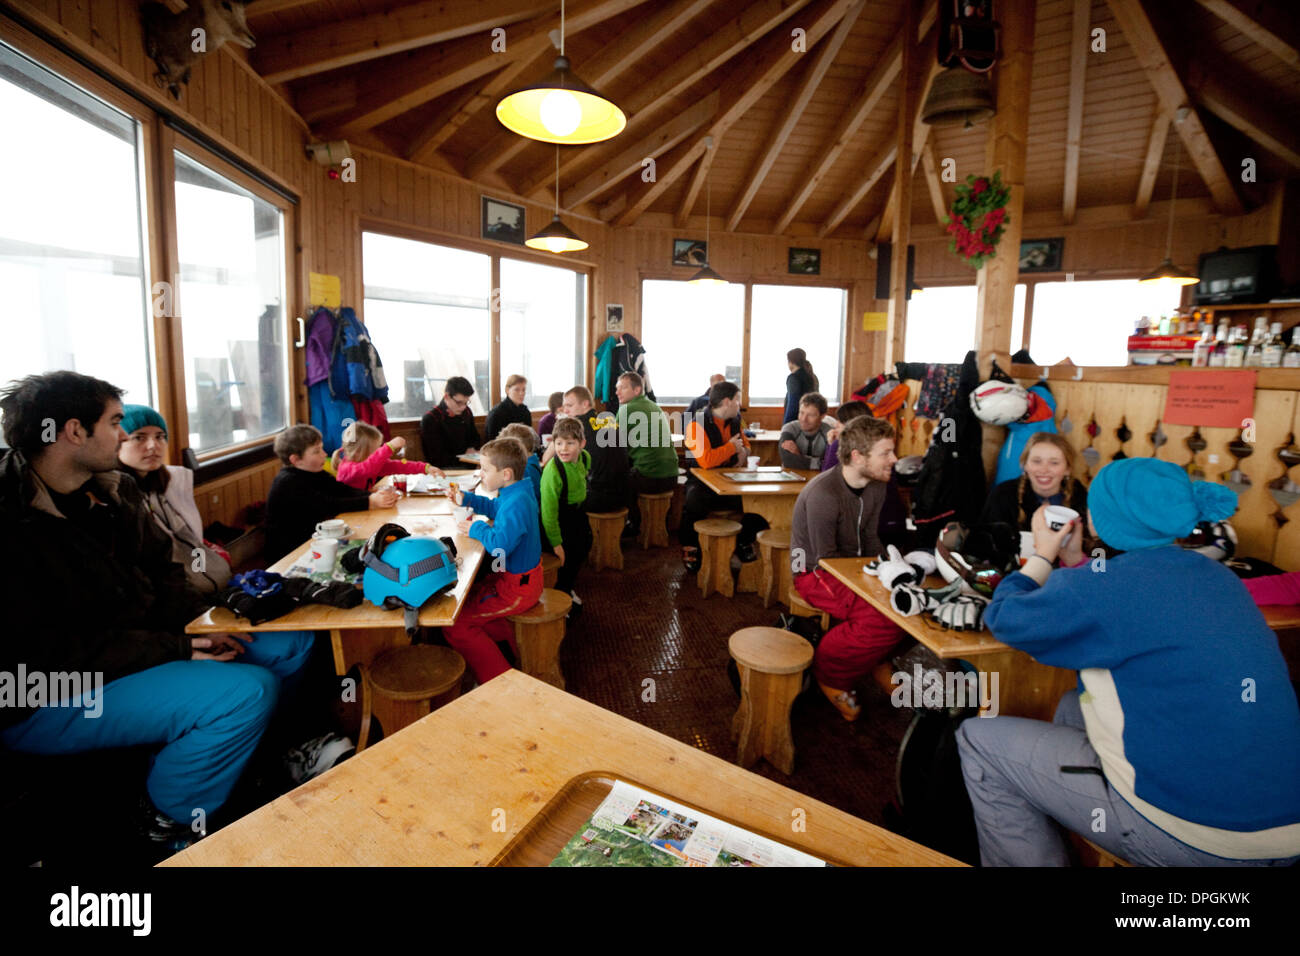 Skiers in a restaurant on the piste drinking and eating, Plan de Croix, Les Portes du Soleil, Swiss Alps, Switzerland Europe - Stock Image